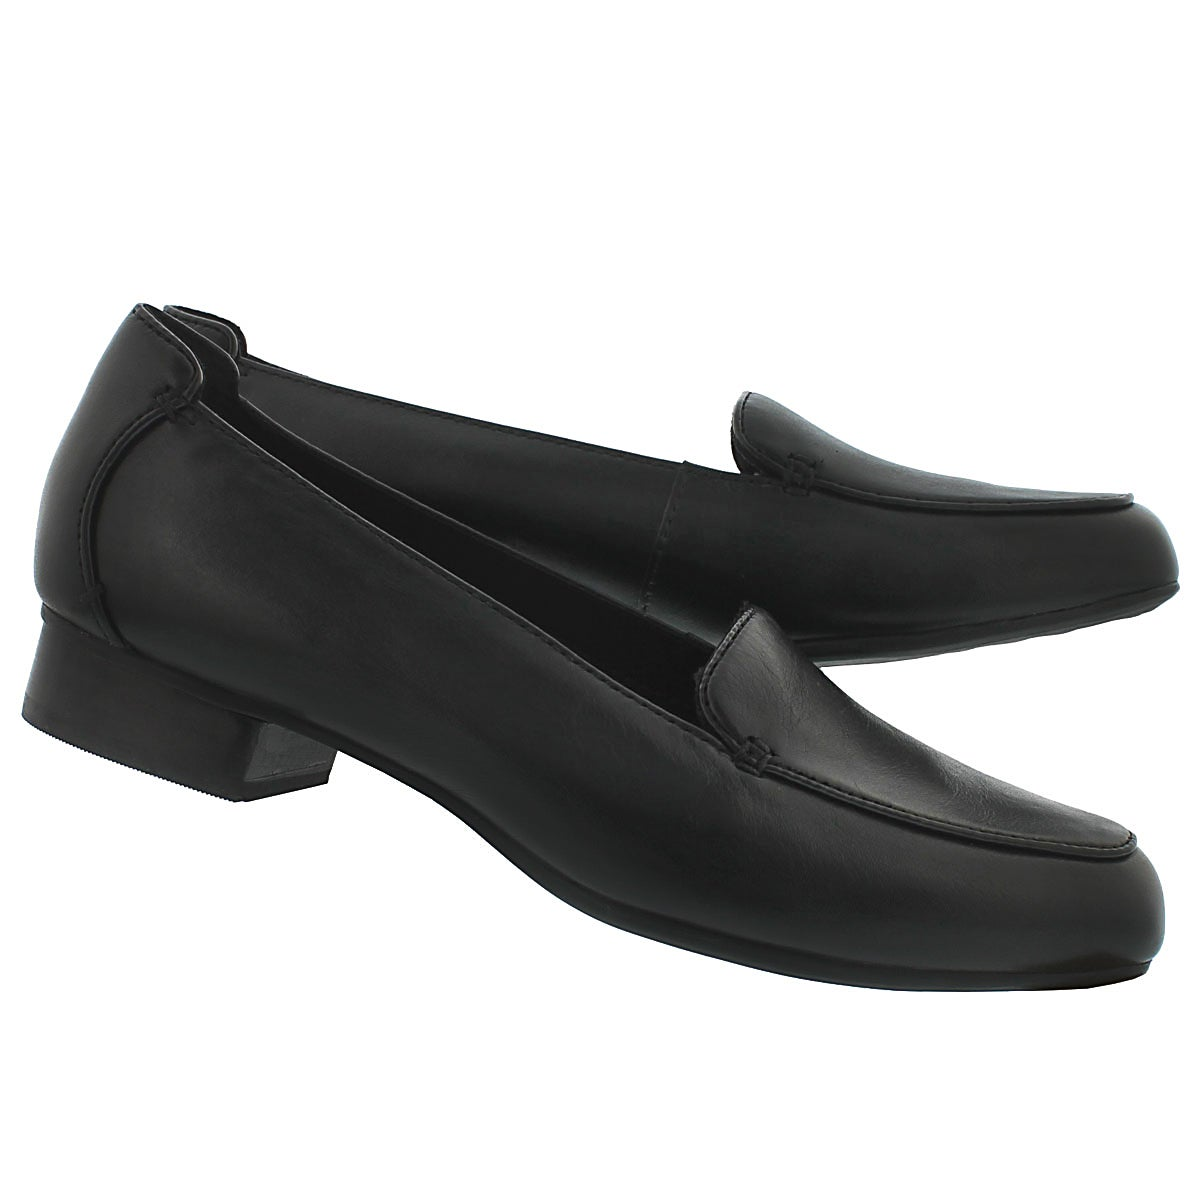 Lds Keesha Luca black loafer - wide